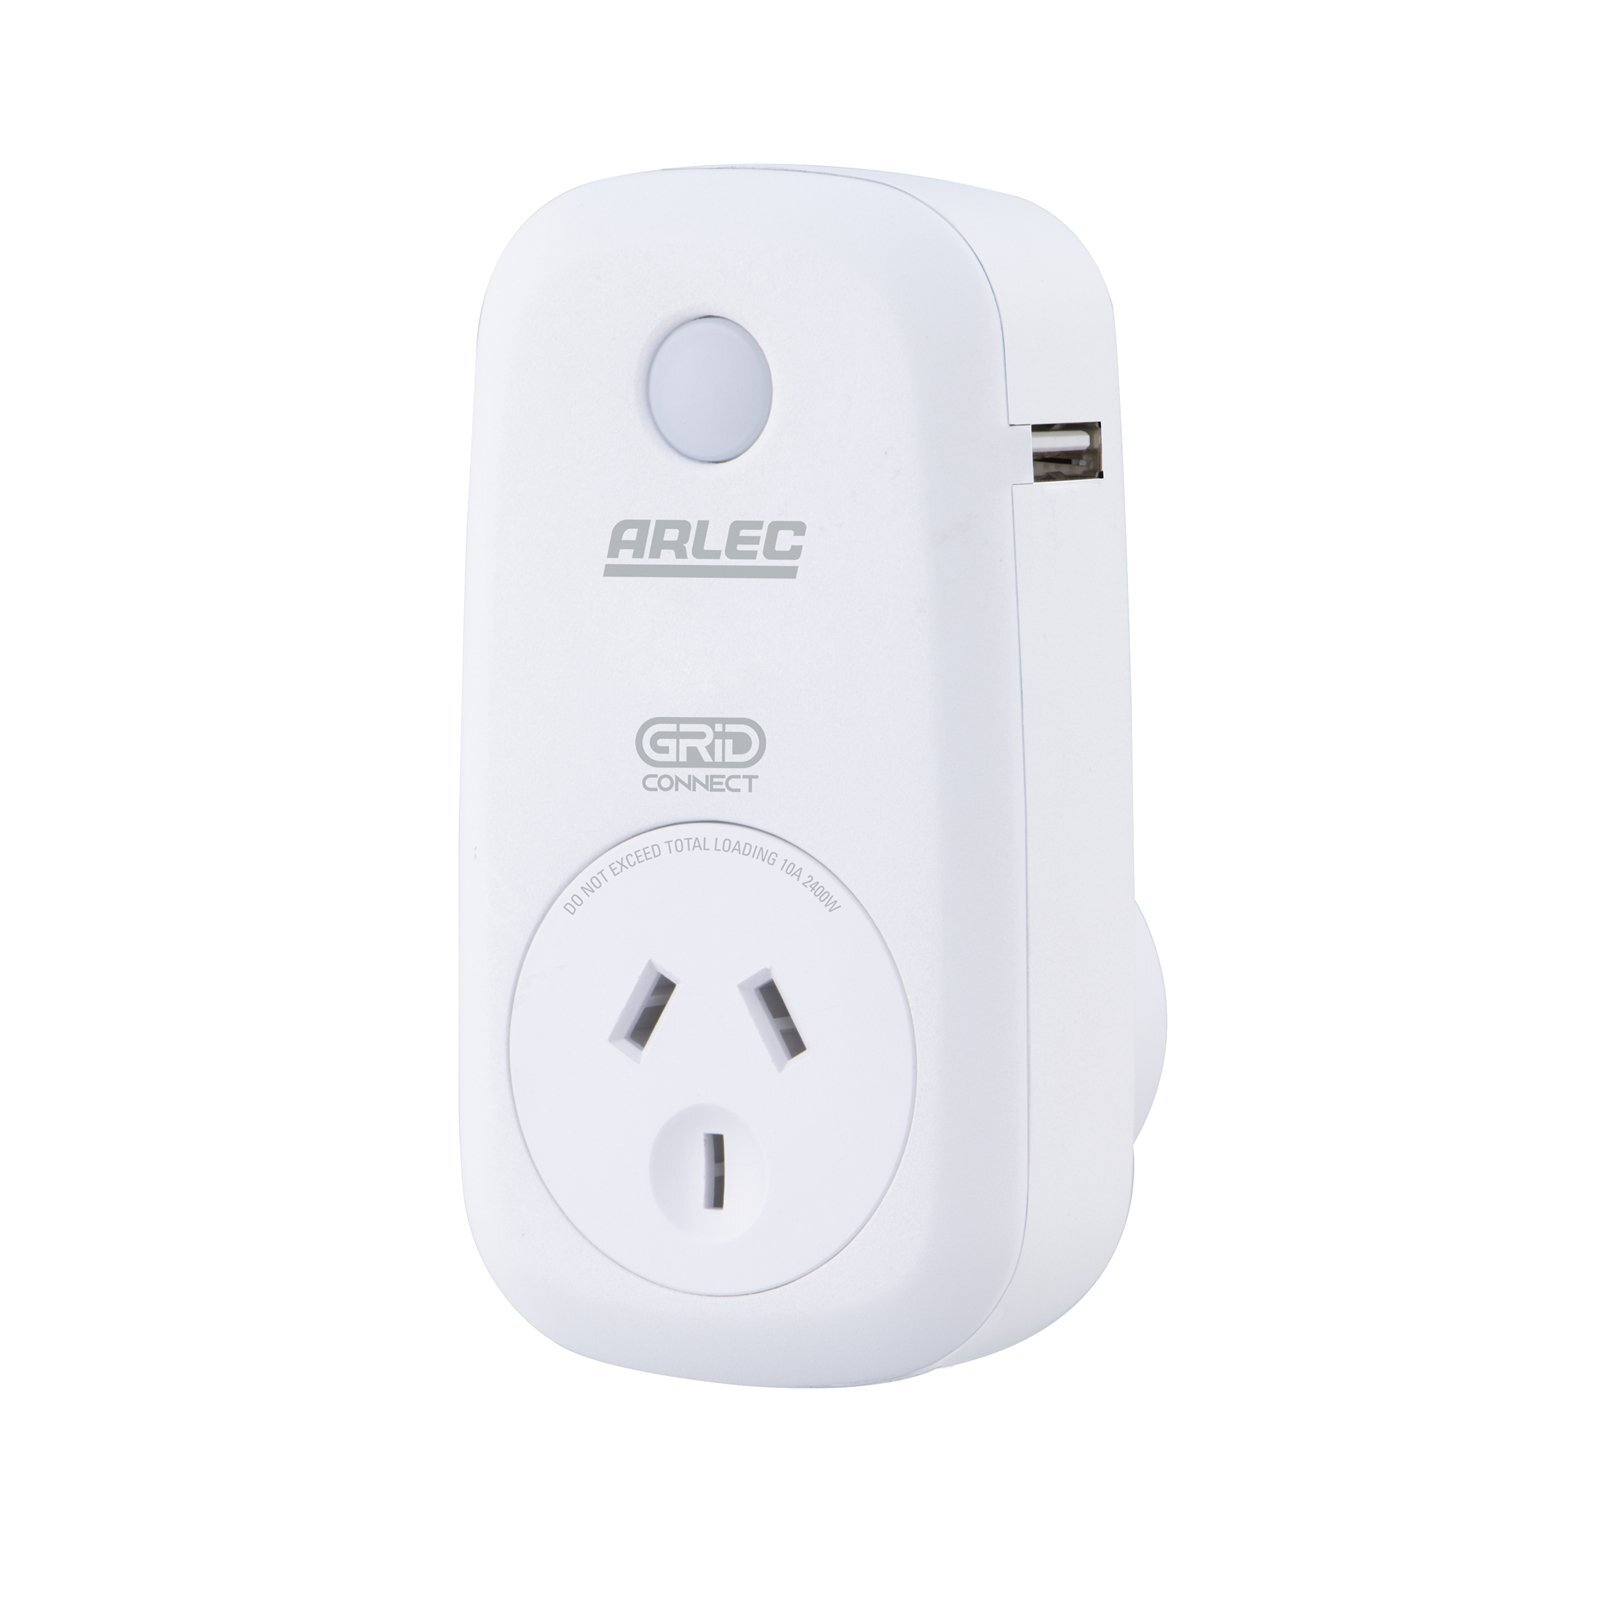 Arlec Grid Connect Smart Plug In Socket With 2.1A USB Charger